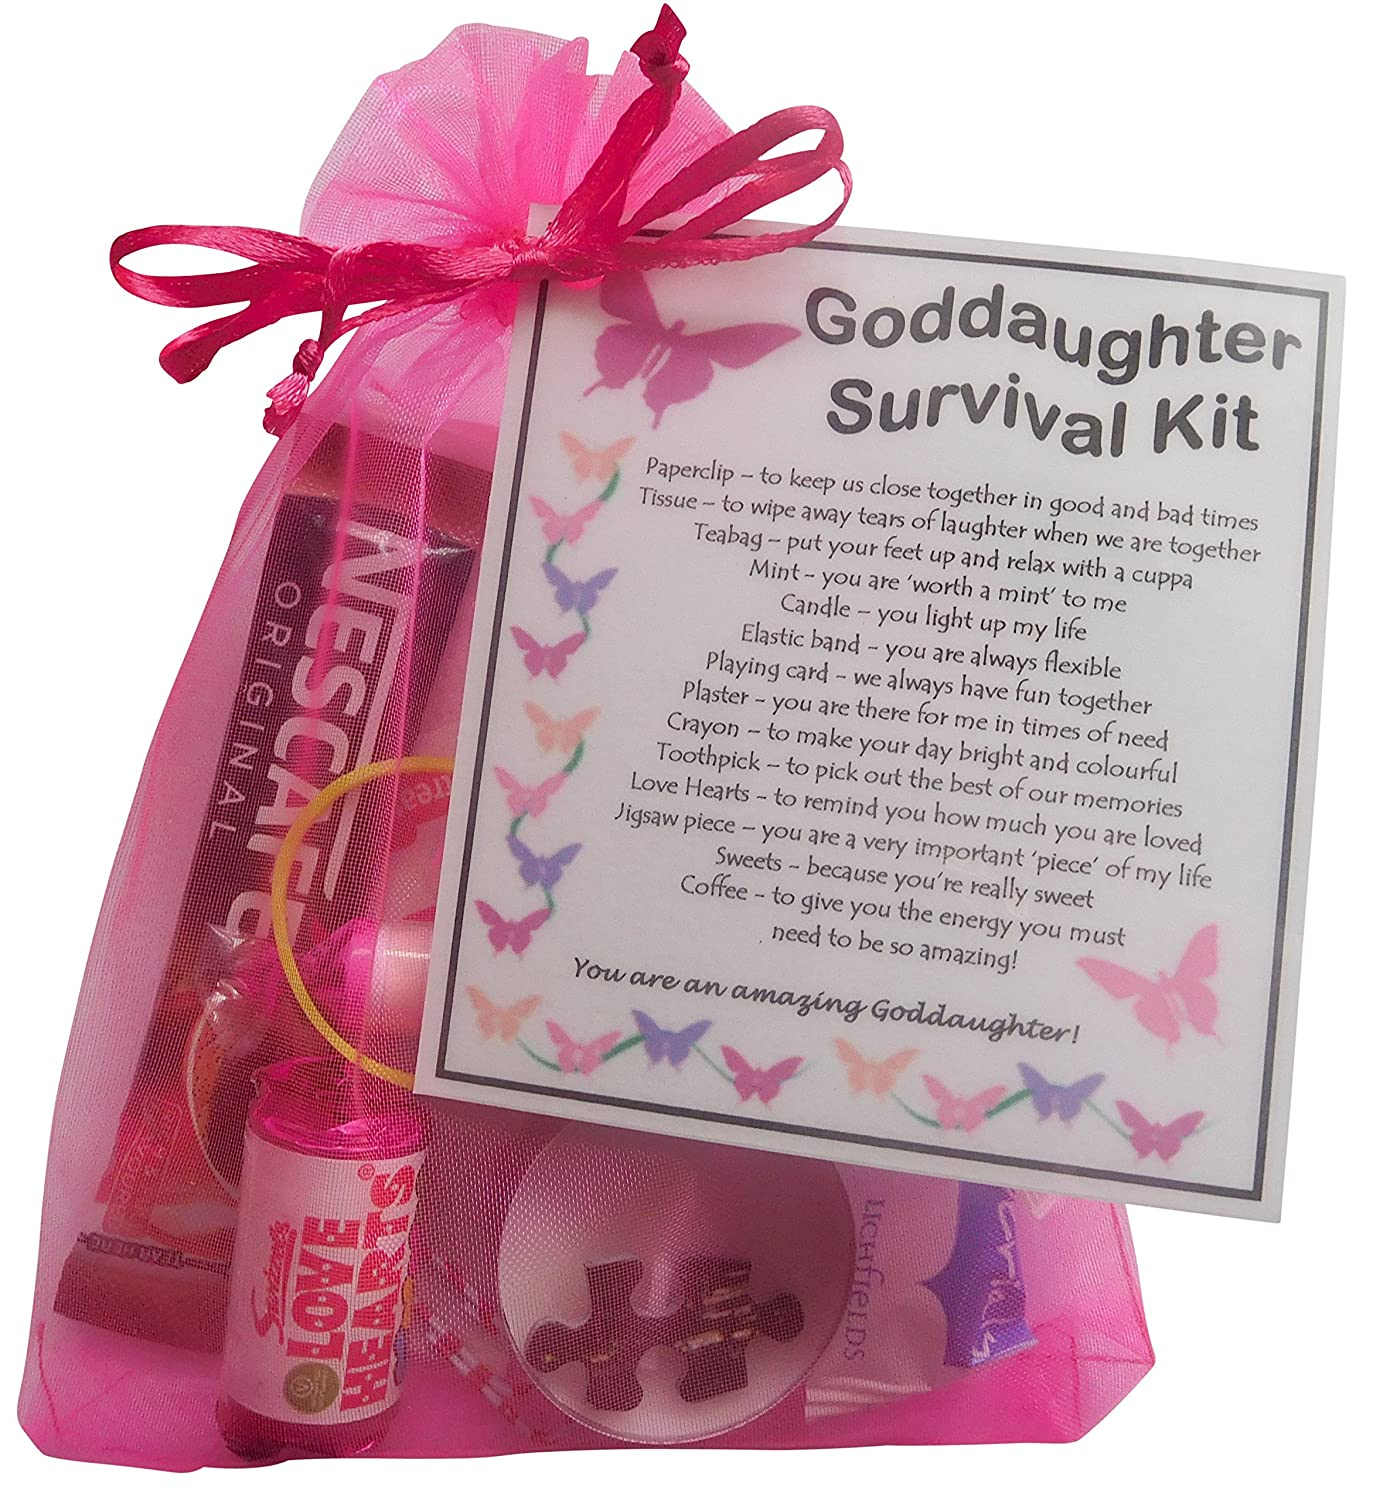 Nesca Presents Valued Approaches To >> Smile Gifts Uk Goddaughter Survival Kit Gift Great Present For Birthday Christmas Etc Goddaughter Gift Gift For Goddaughter Goddaughter